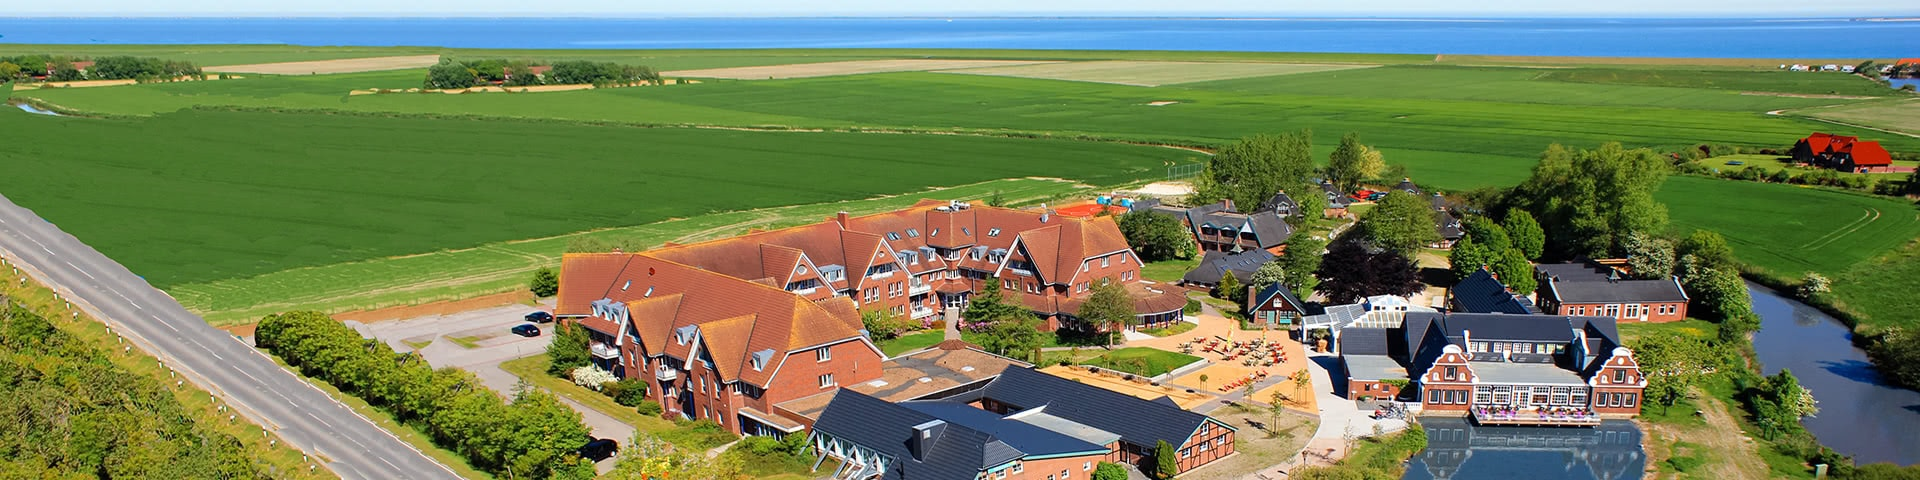 Luftansicht vom DJH Club-Resort Neuharlingersiel